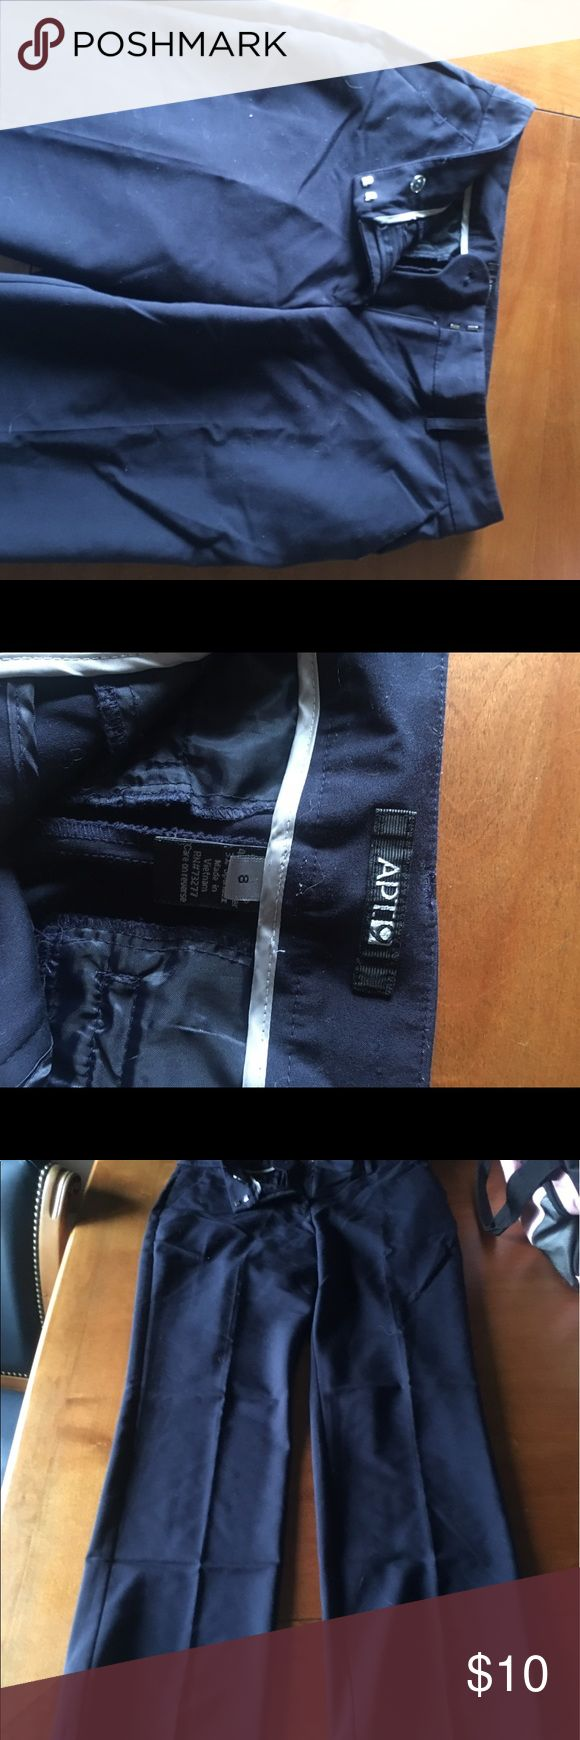 Navy Blue Dress pants Super comfy, worn to one worn conference Apt. 9 Pants Trousers